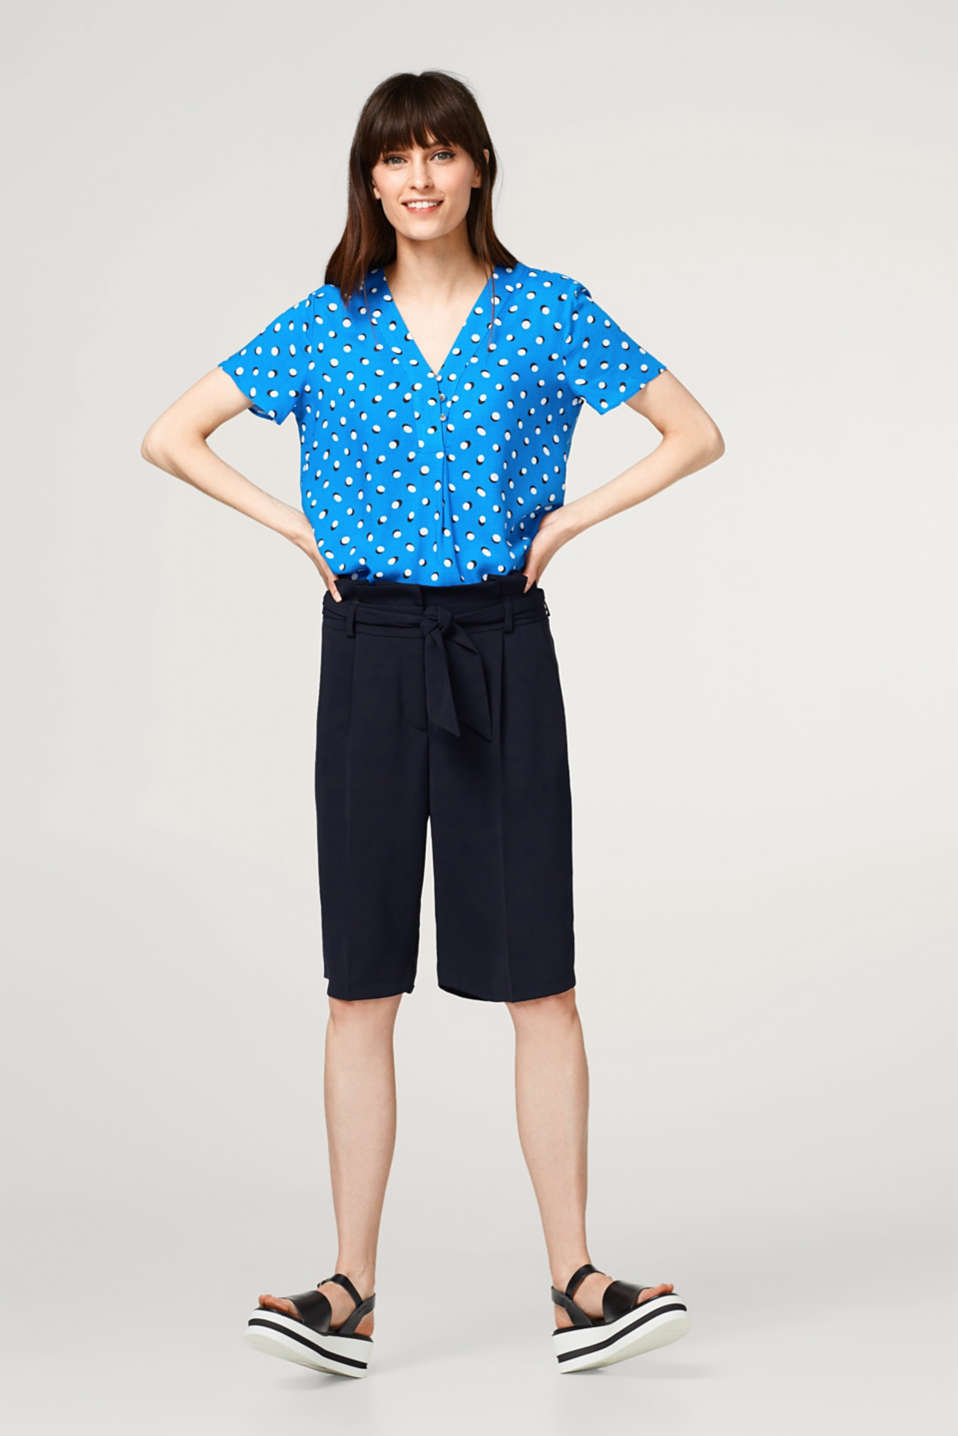 Polka dot blouse top with an inverted pleat